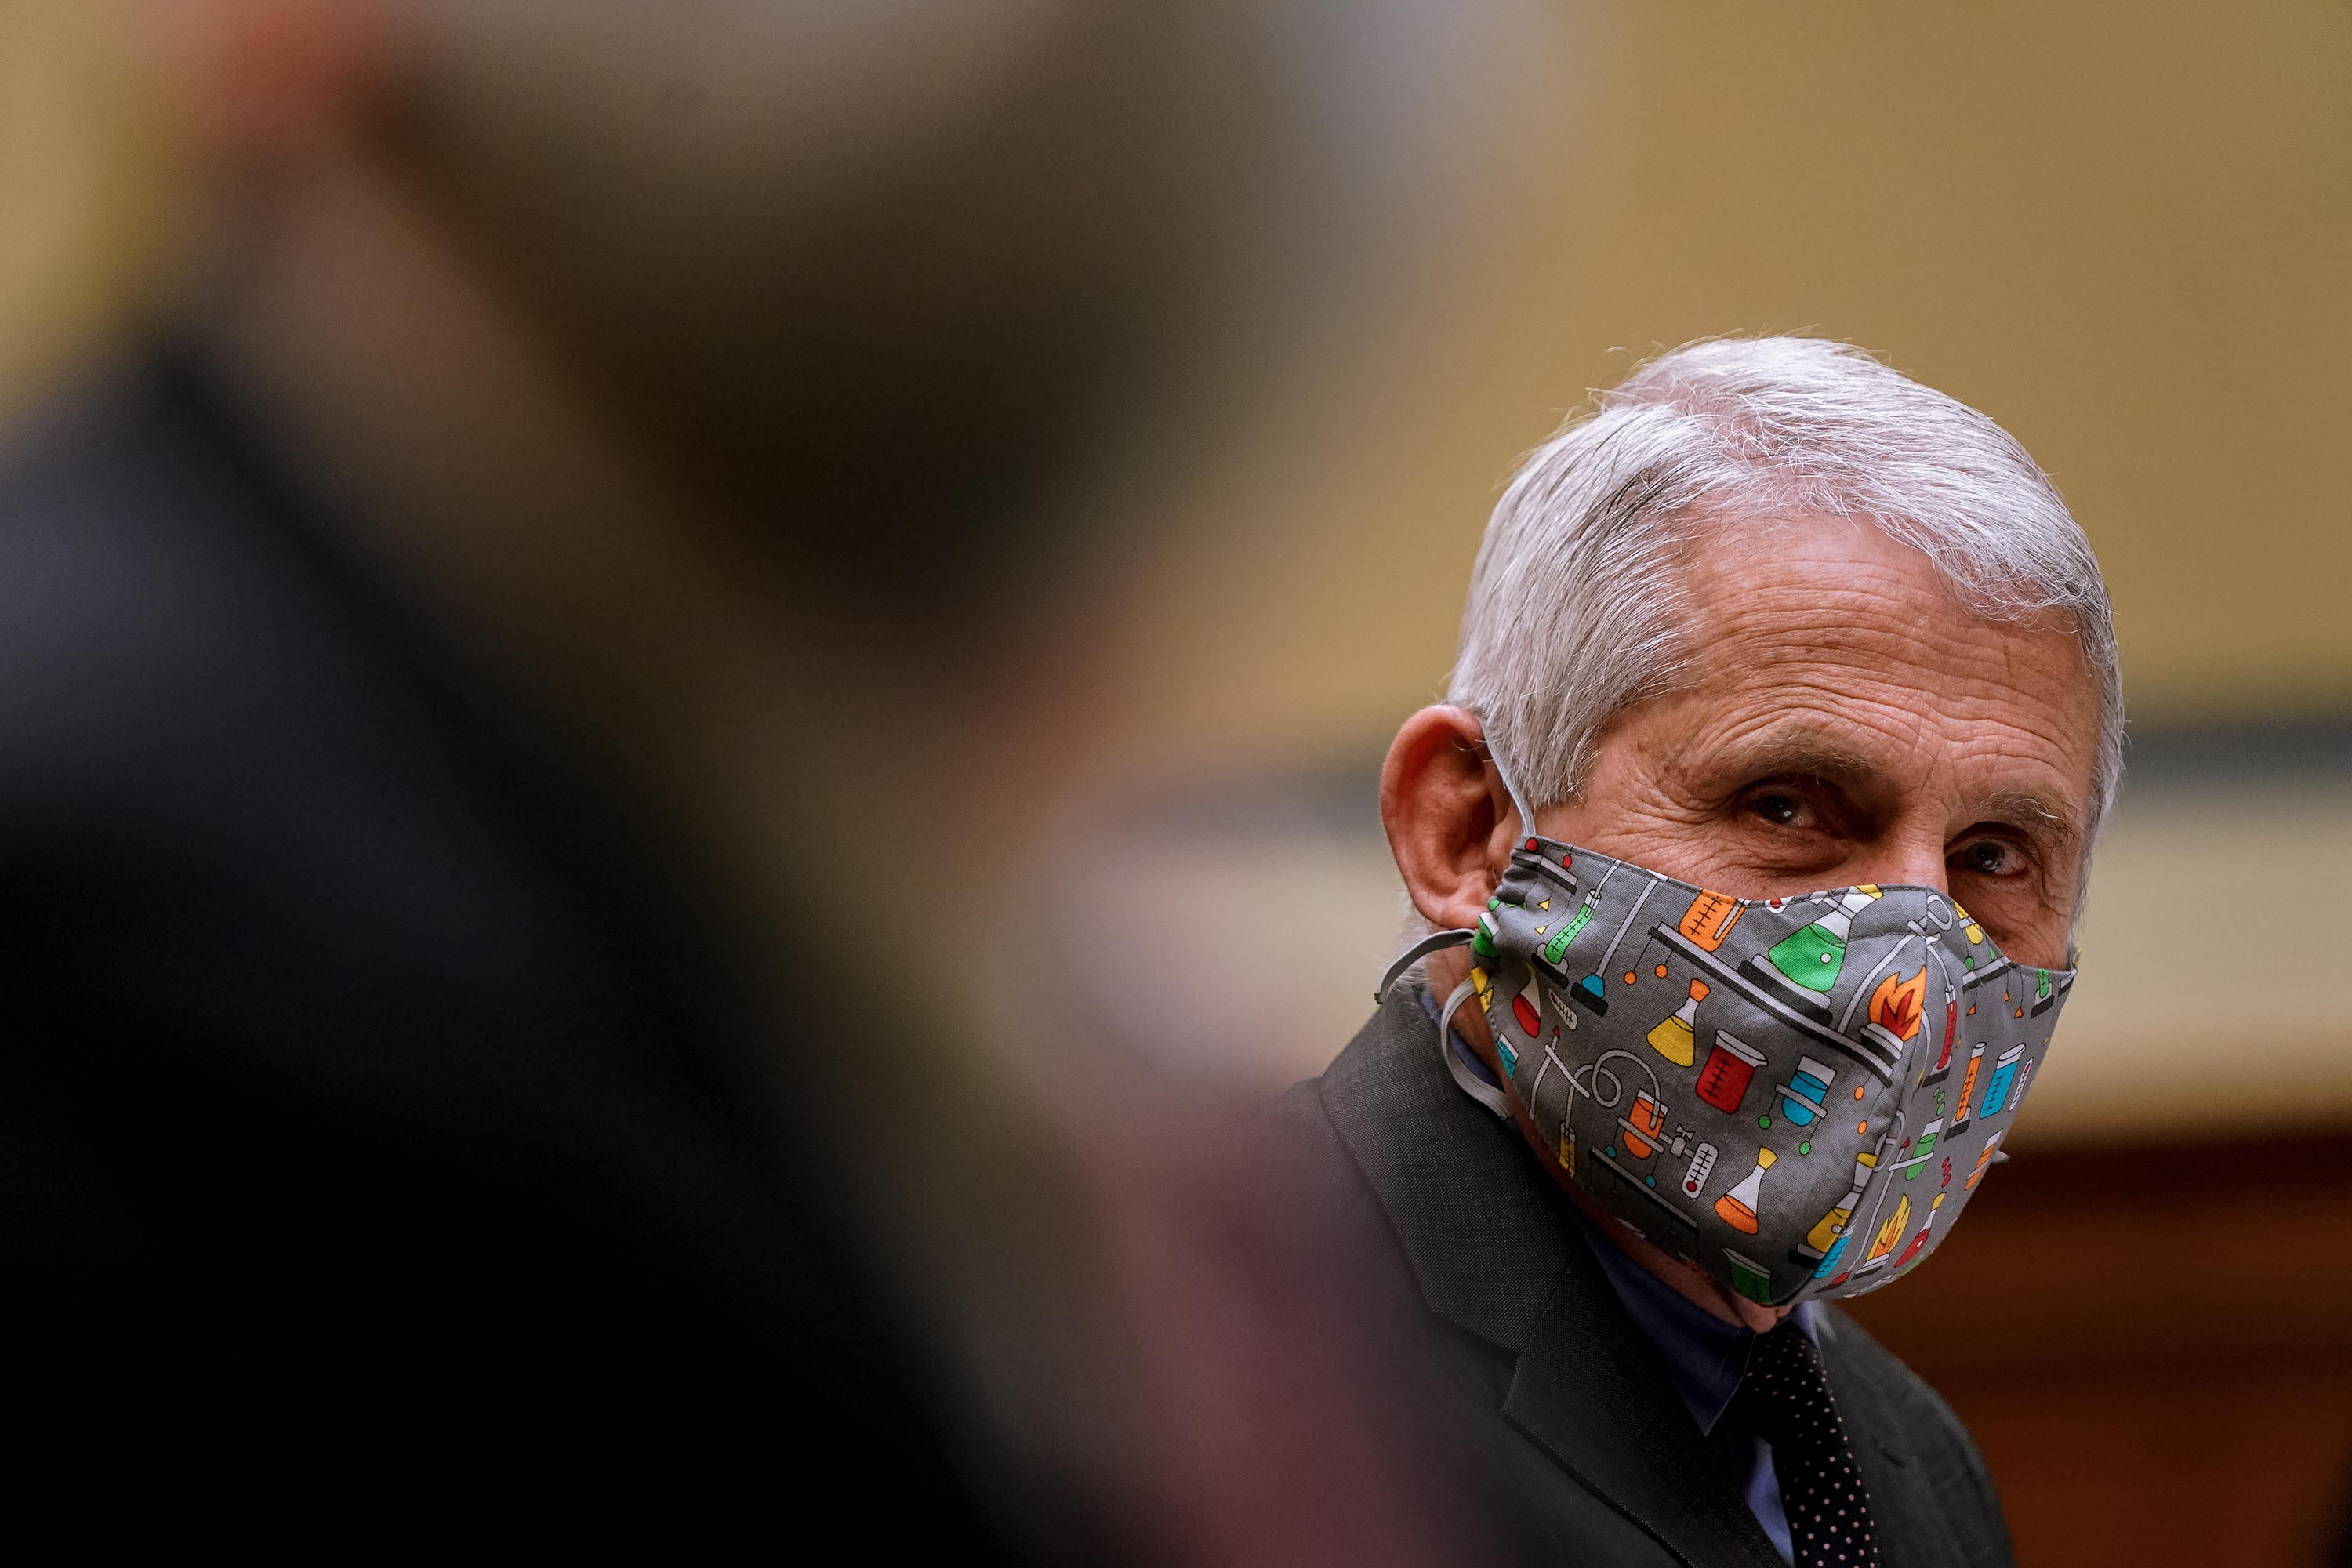 Dr. Anthony Fauci, Director of NIAID and Chief Medical Advisor to the President, is pictured at a hearing on Capitol Hill in Washington, DC, on April 15.